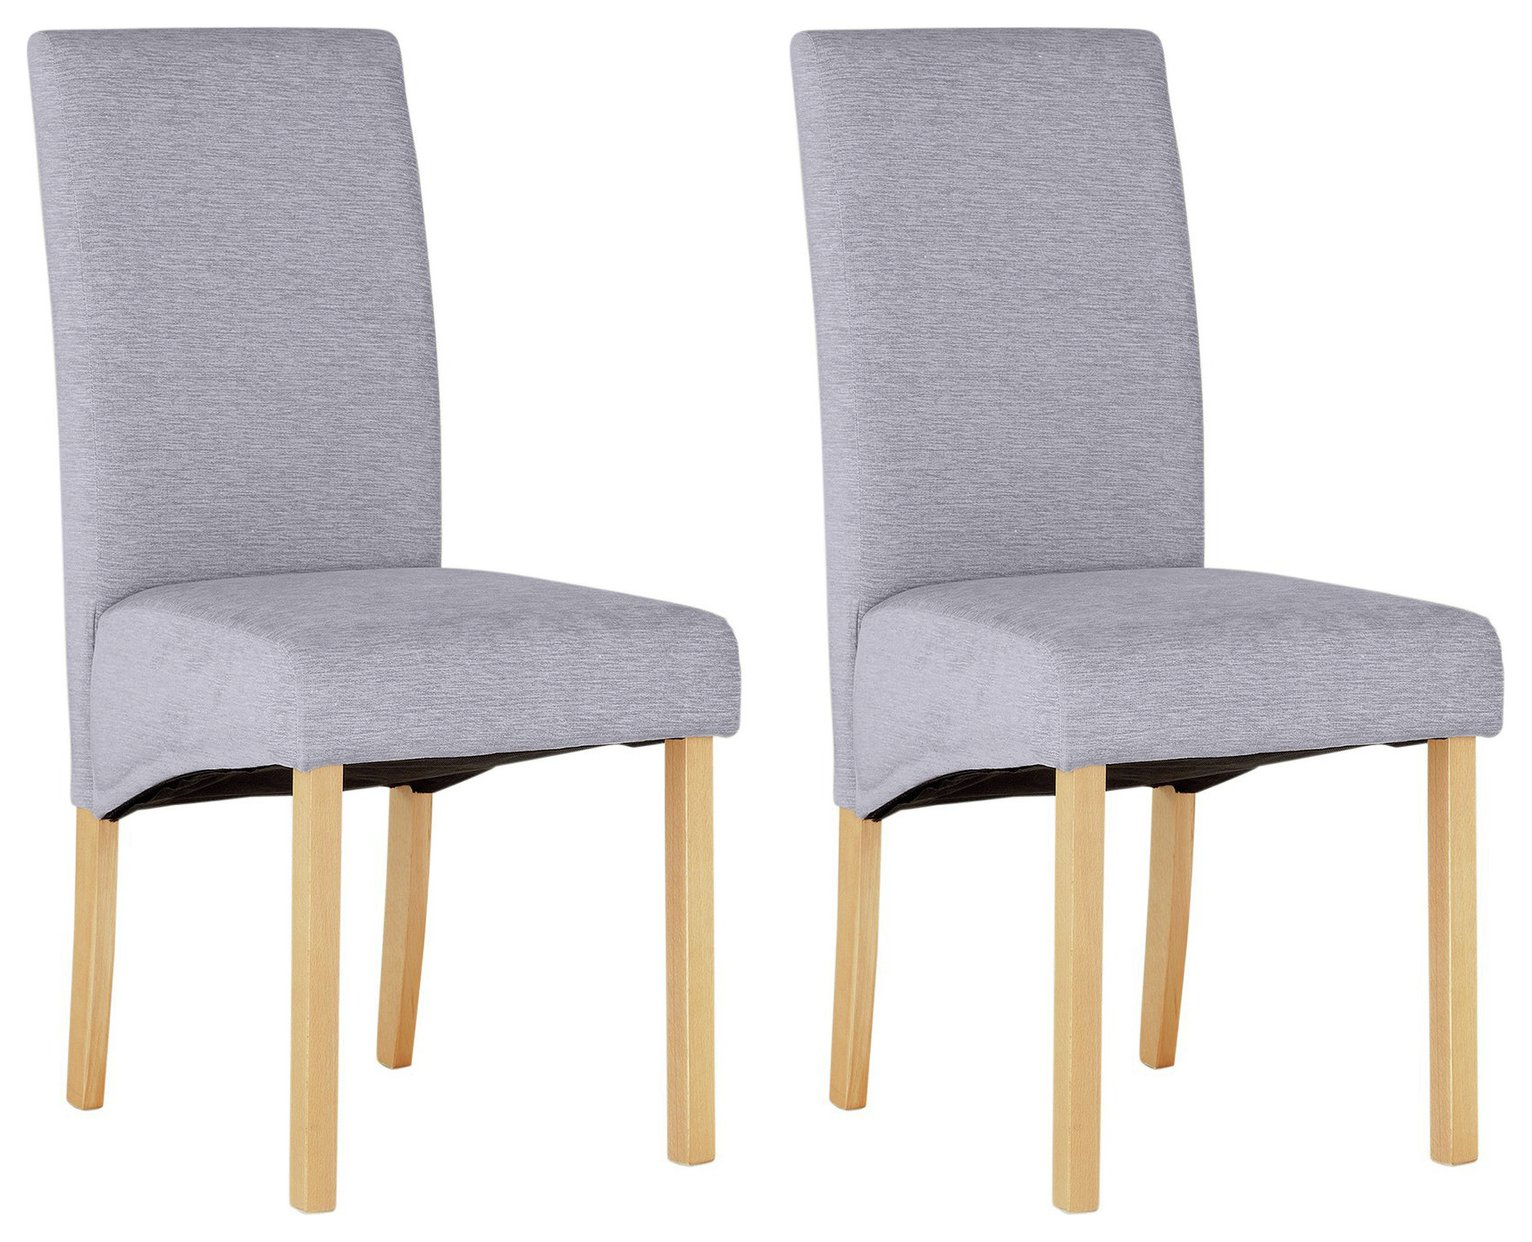 Argos Home Pair Of Fabric Skirted Dining Chairs   Pale Grey